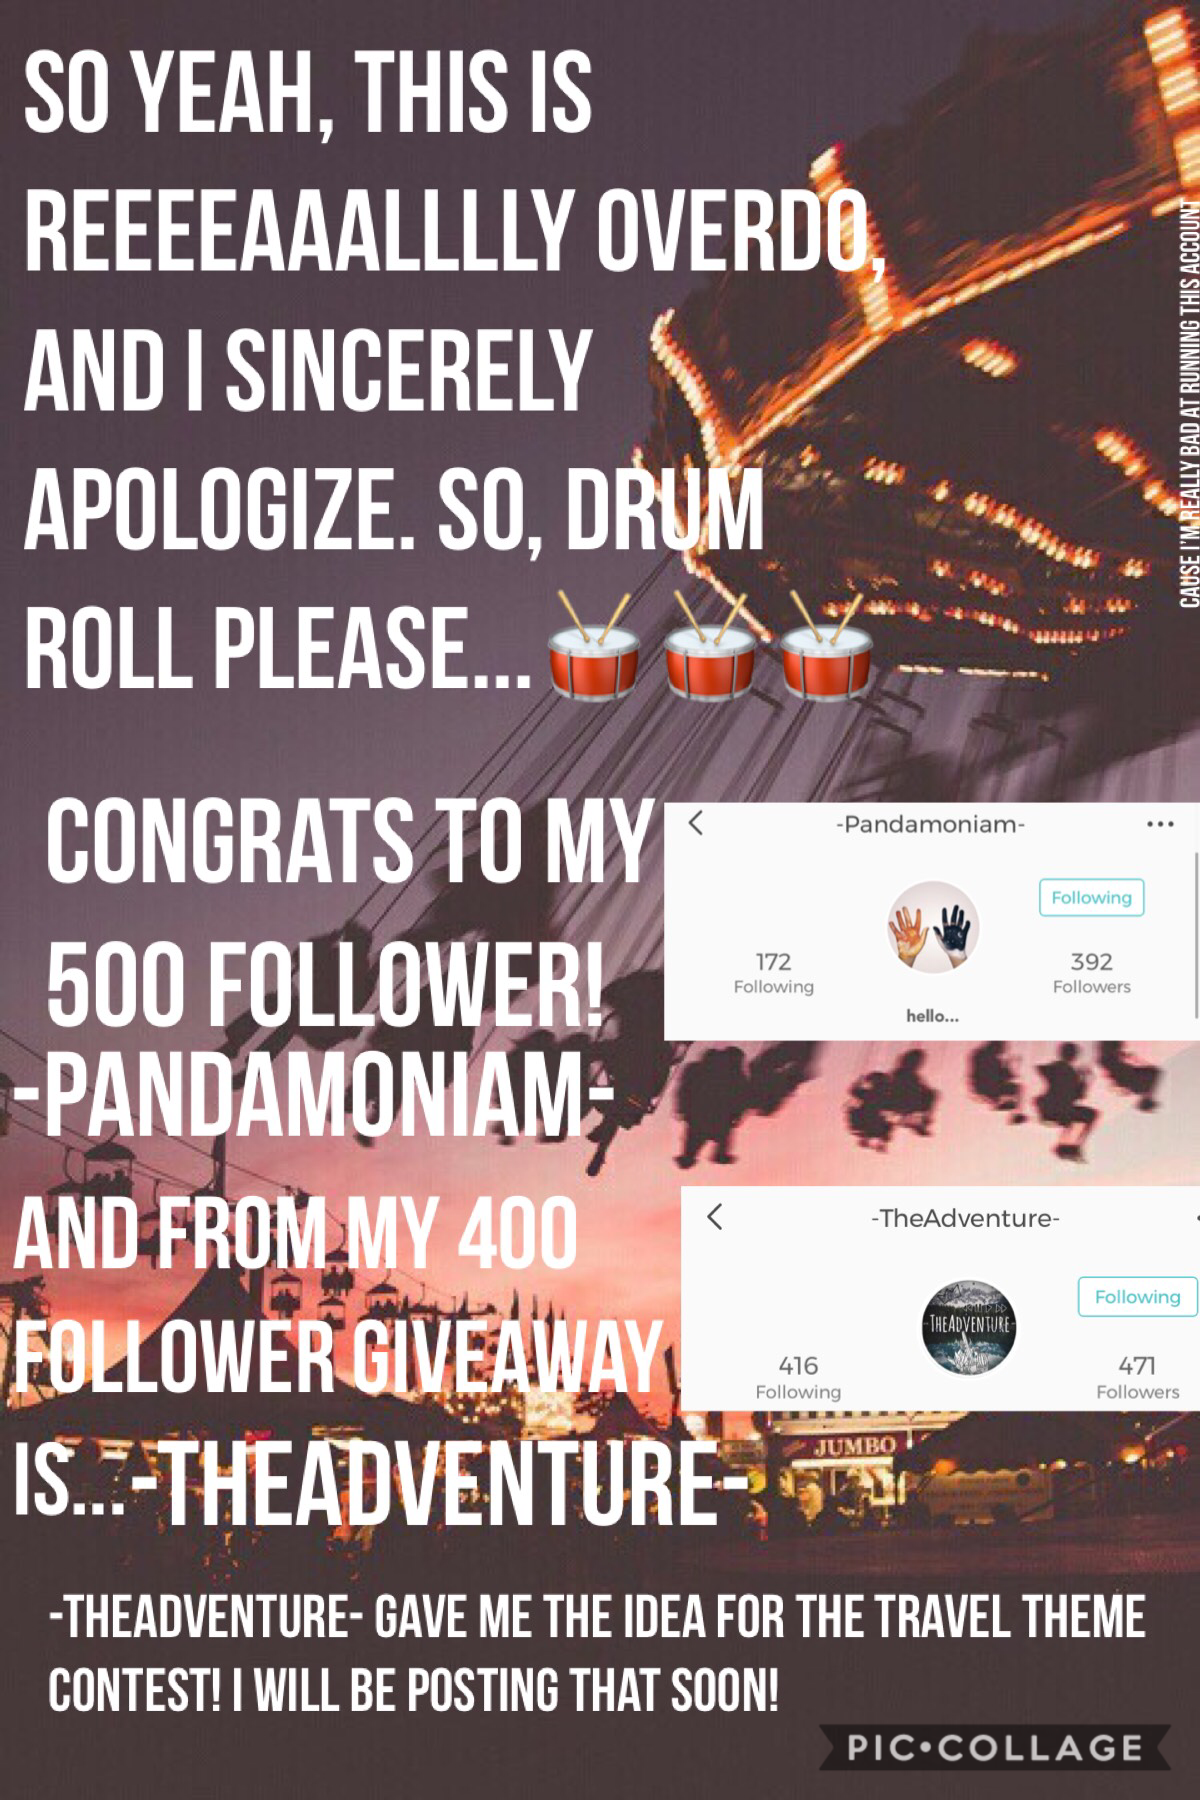 Sorry again that this is soooo overdue!  If the persons mentioned in this collage want anything else besides a ShoutOut, just let me know!😊